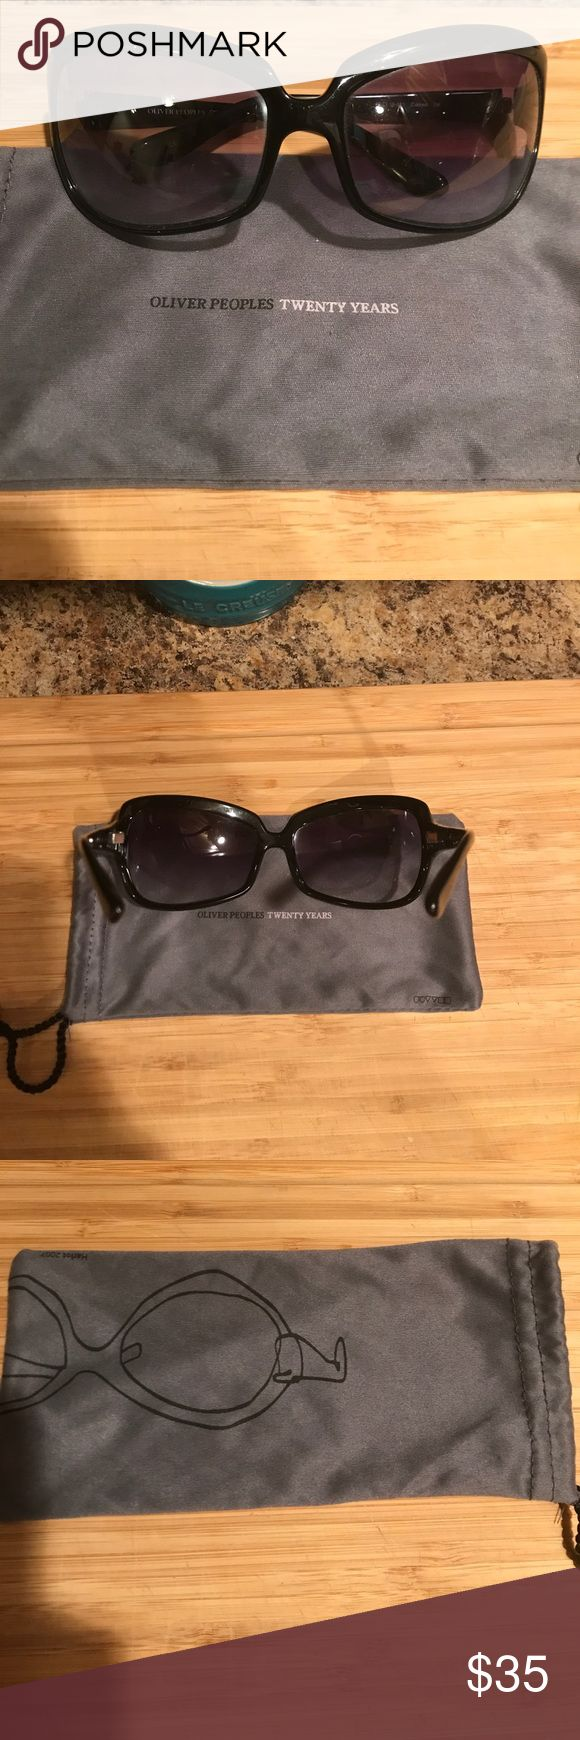 Oliver Peoples sunglasses Maybe worn twice, great condition. Comes with sunglasses bag. Oliver Peoples Accessories Sunglasses